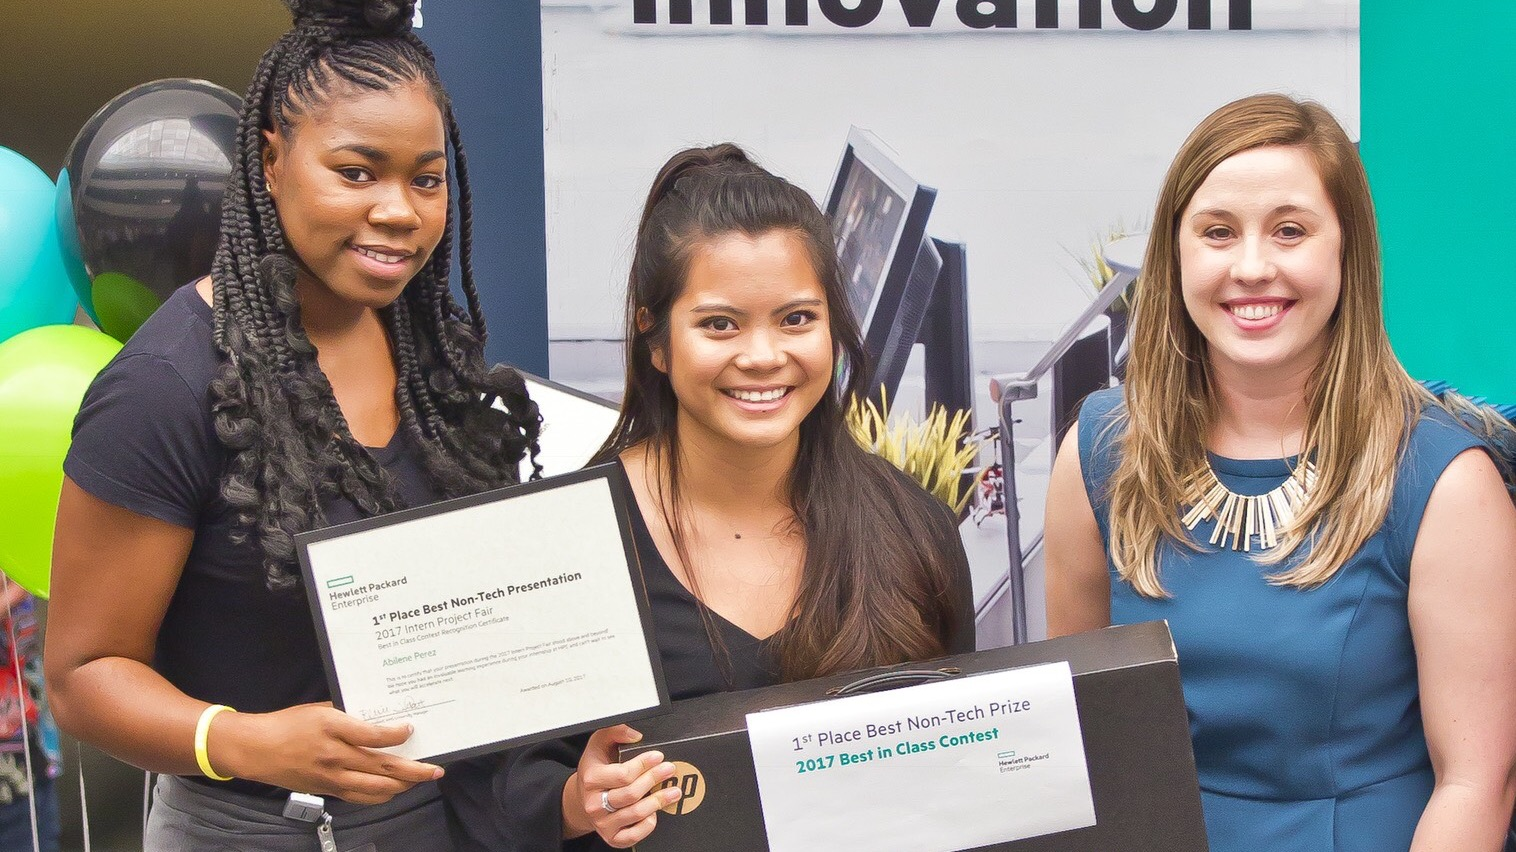 Abilene Perez (center), with other student interns at Hewlett Packard Enterprise